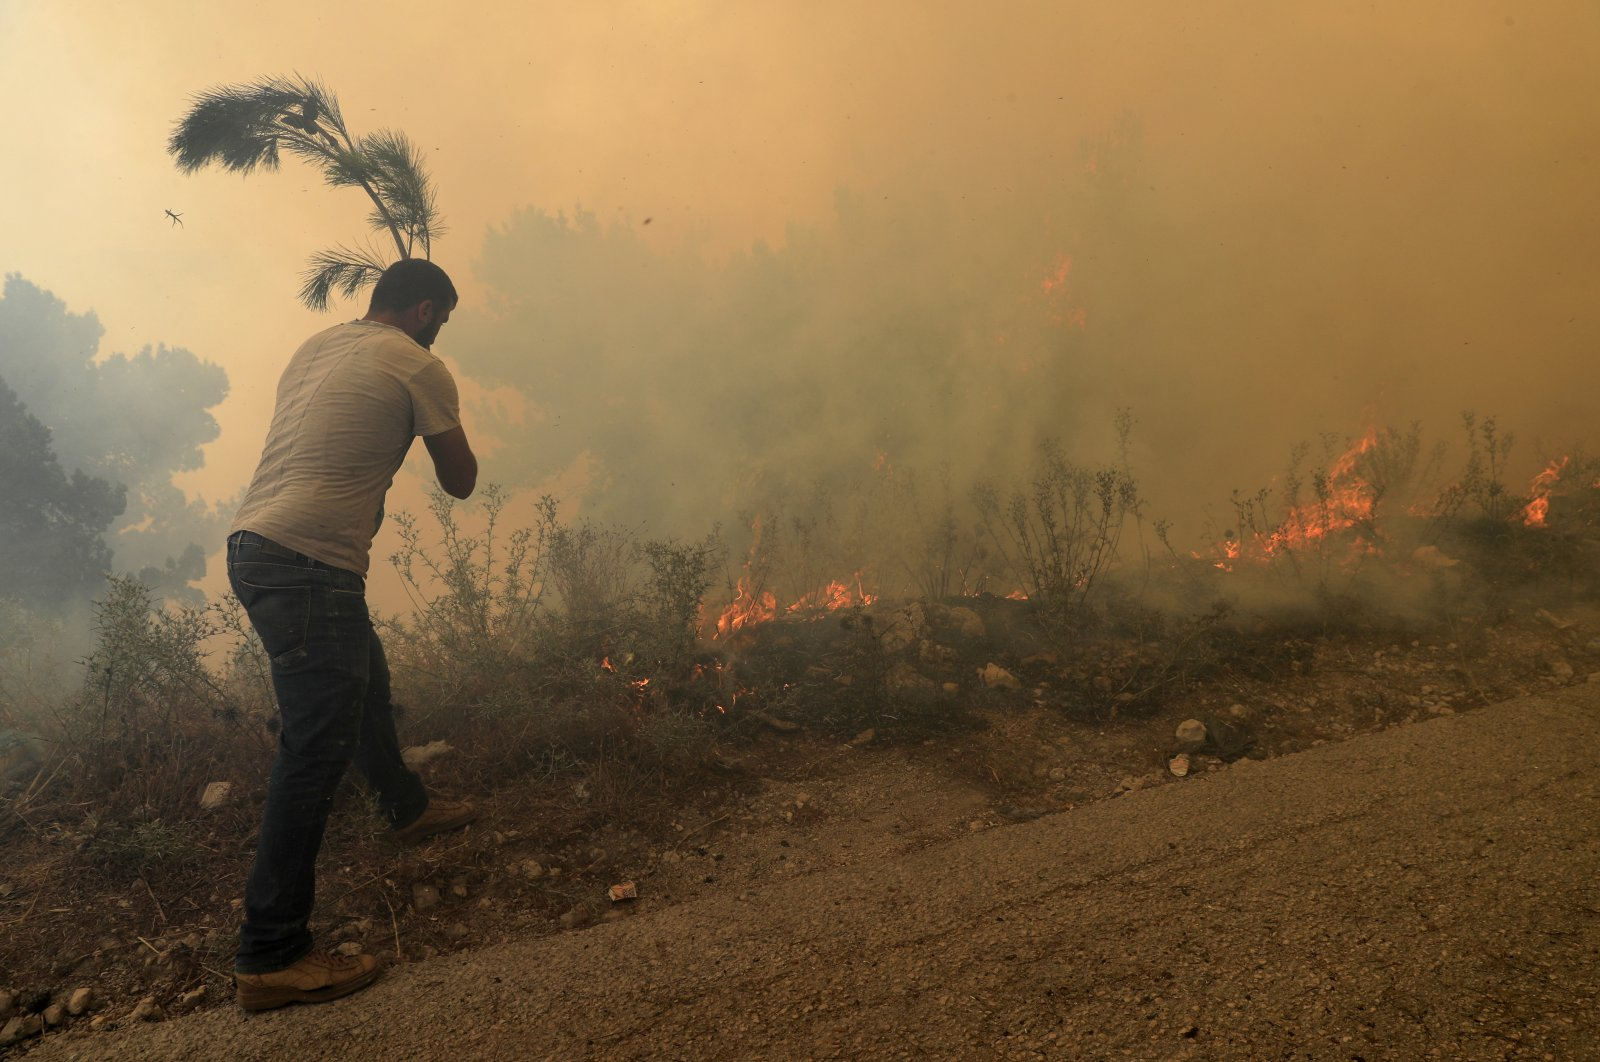 A man tries to extinguish a forest fire at Qobayat village, in the northern Akkar province, Lebanon, on July 29, 2021. (AP Photo)